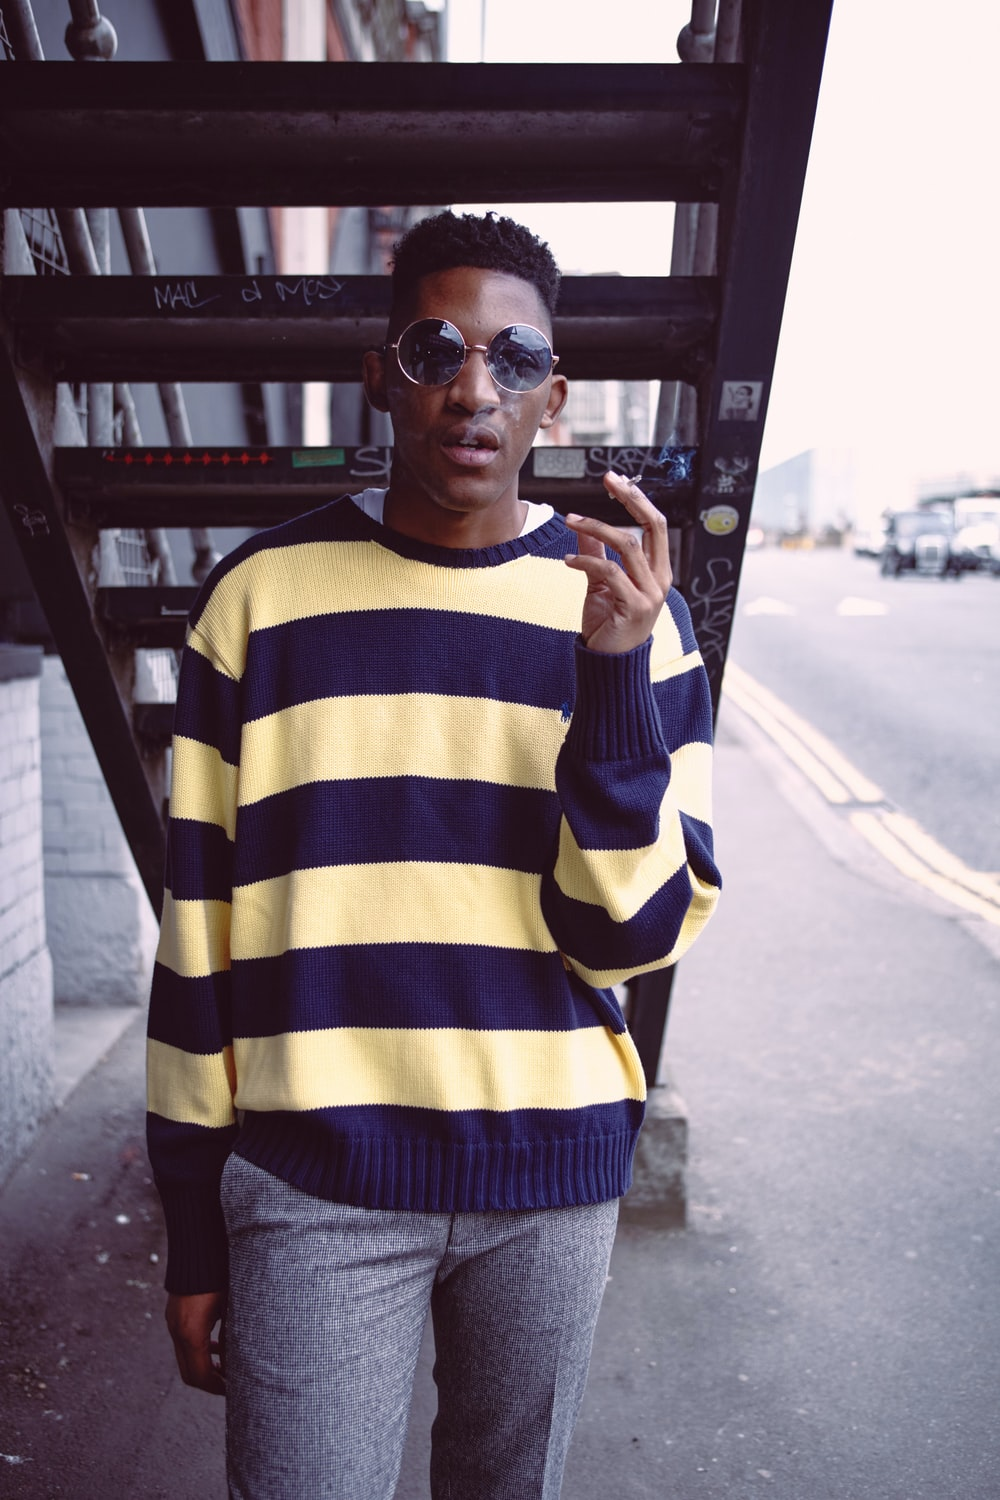 man in yellow and blue striped long sleeve shirt wearing black sunglasses